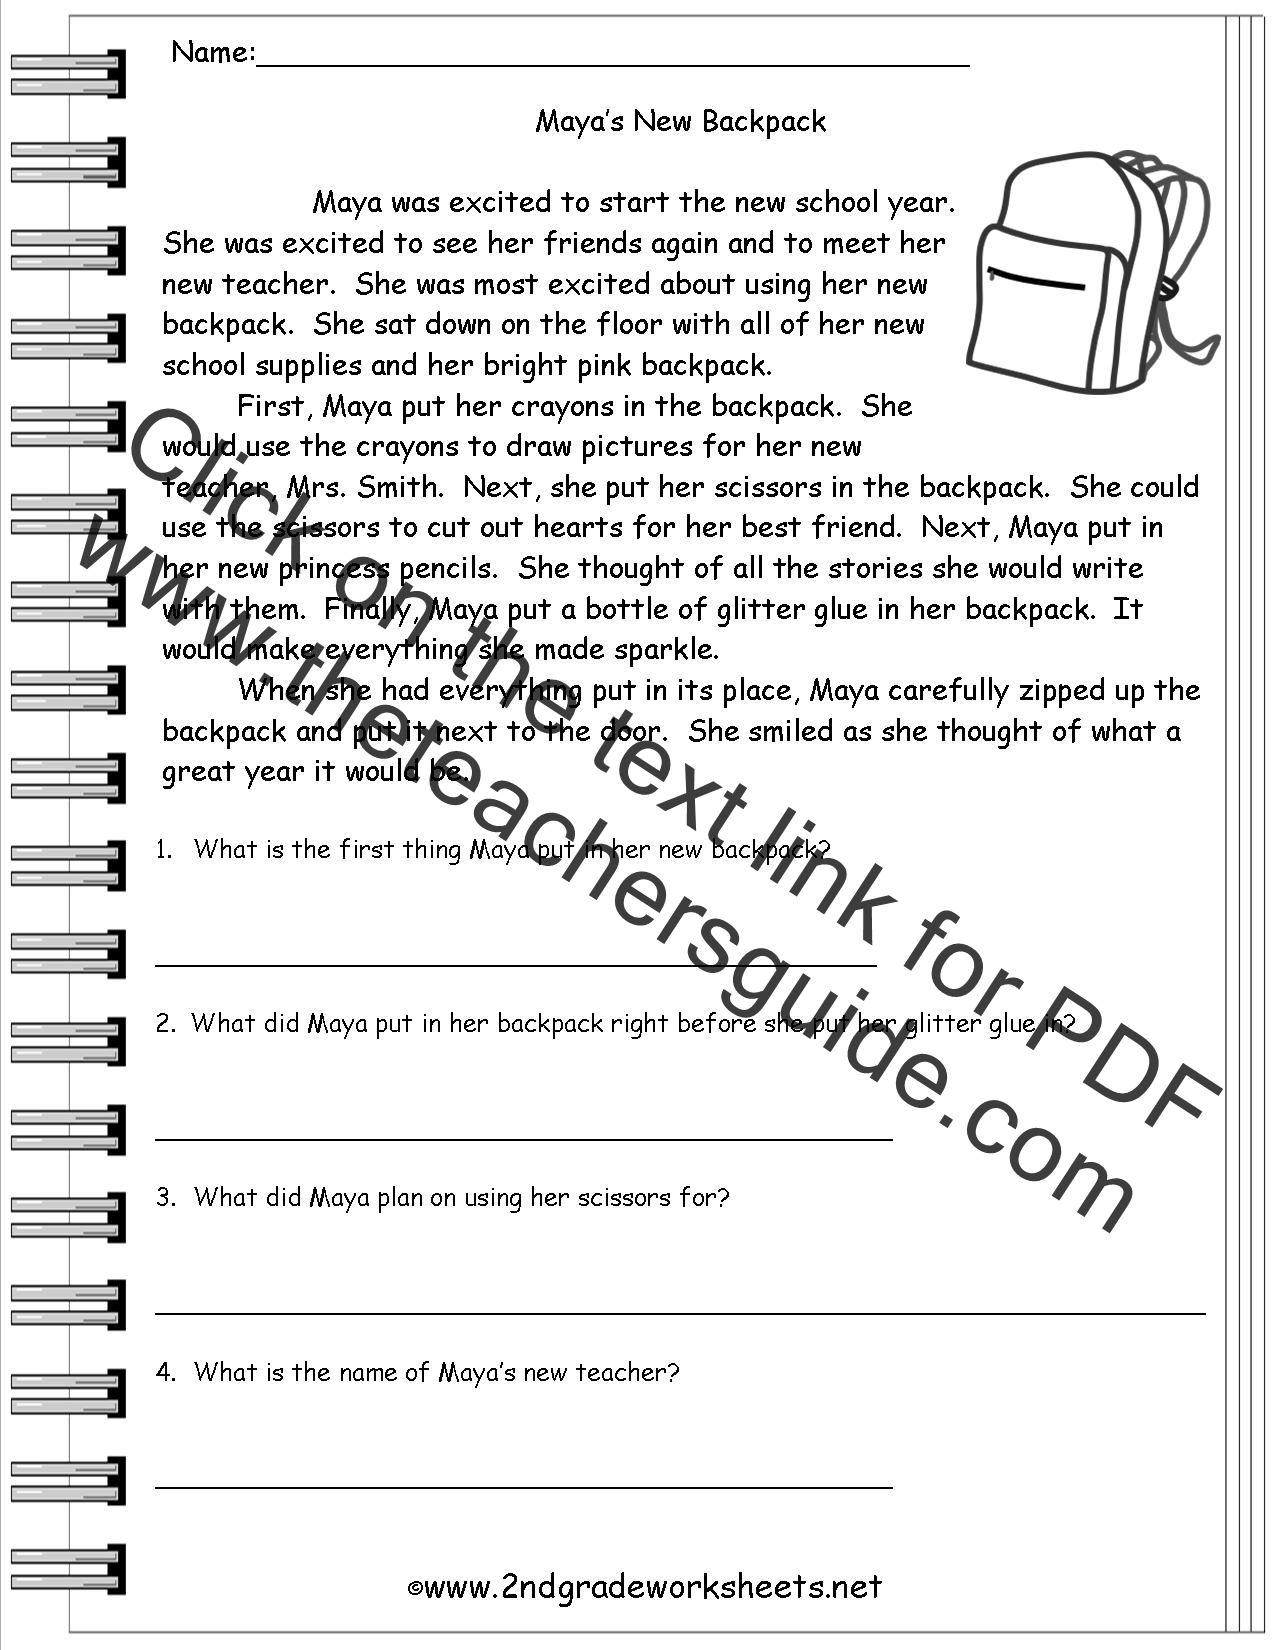 Worksheets Reading Comprehension Worksheets For Adults reading worksheeets worksheets